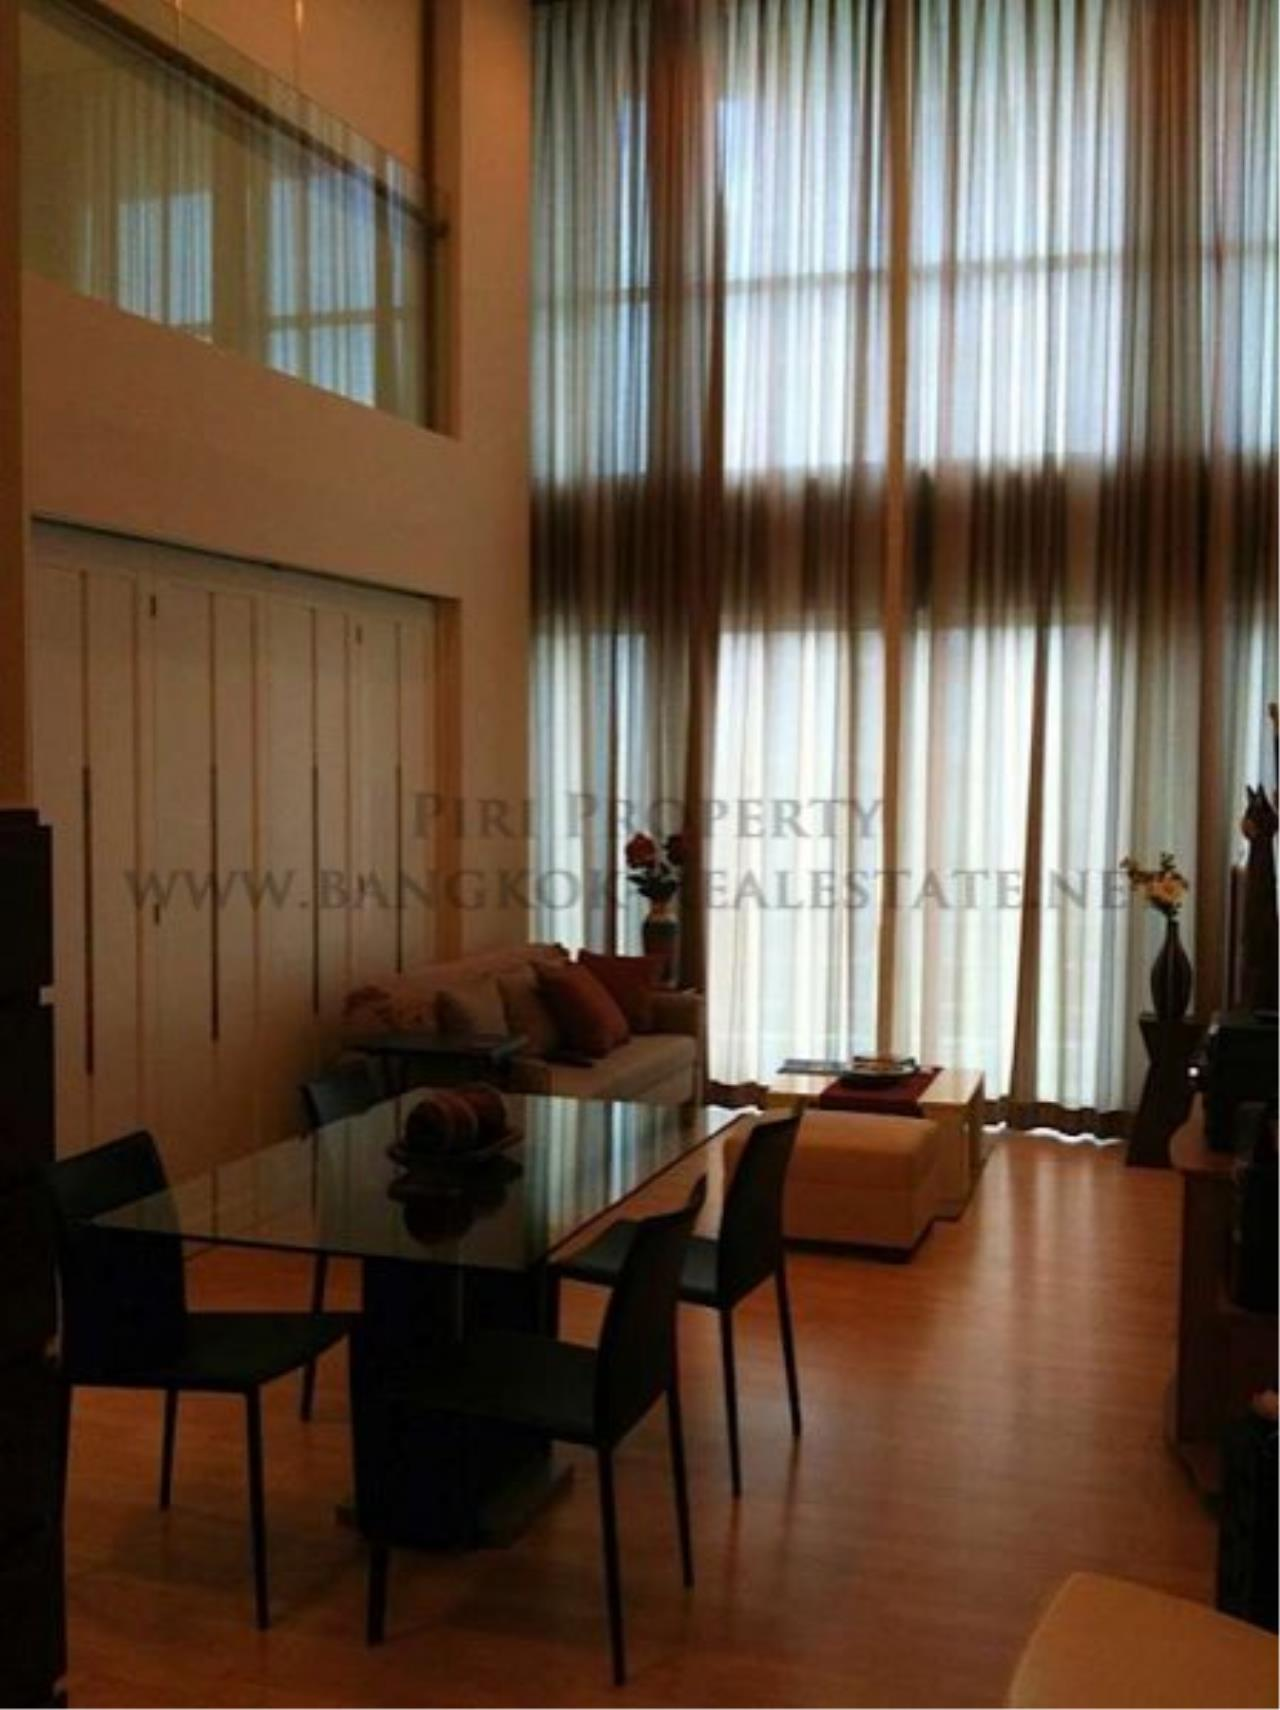 Piri Property Agency's 2 Bedroom Duplex Condo for Rent on Rajdamri Road - The Rajdamri Condo 3